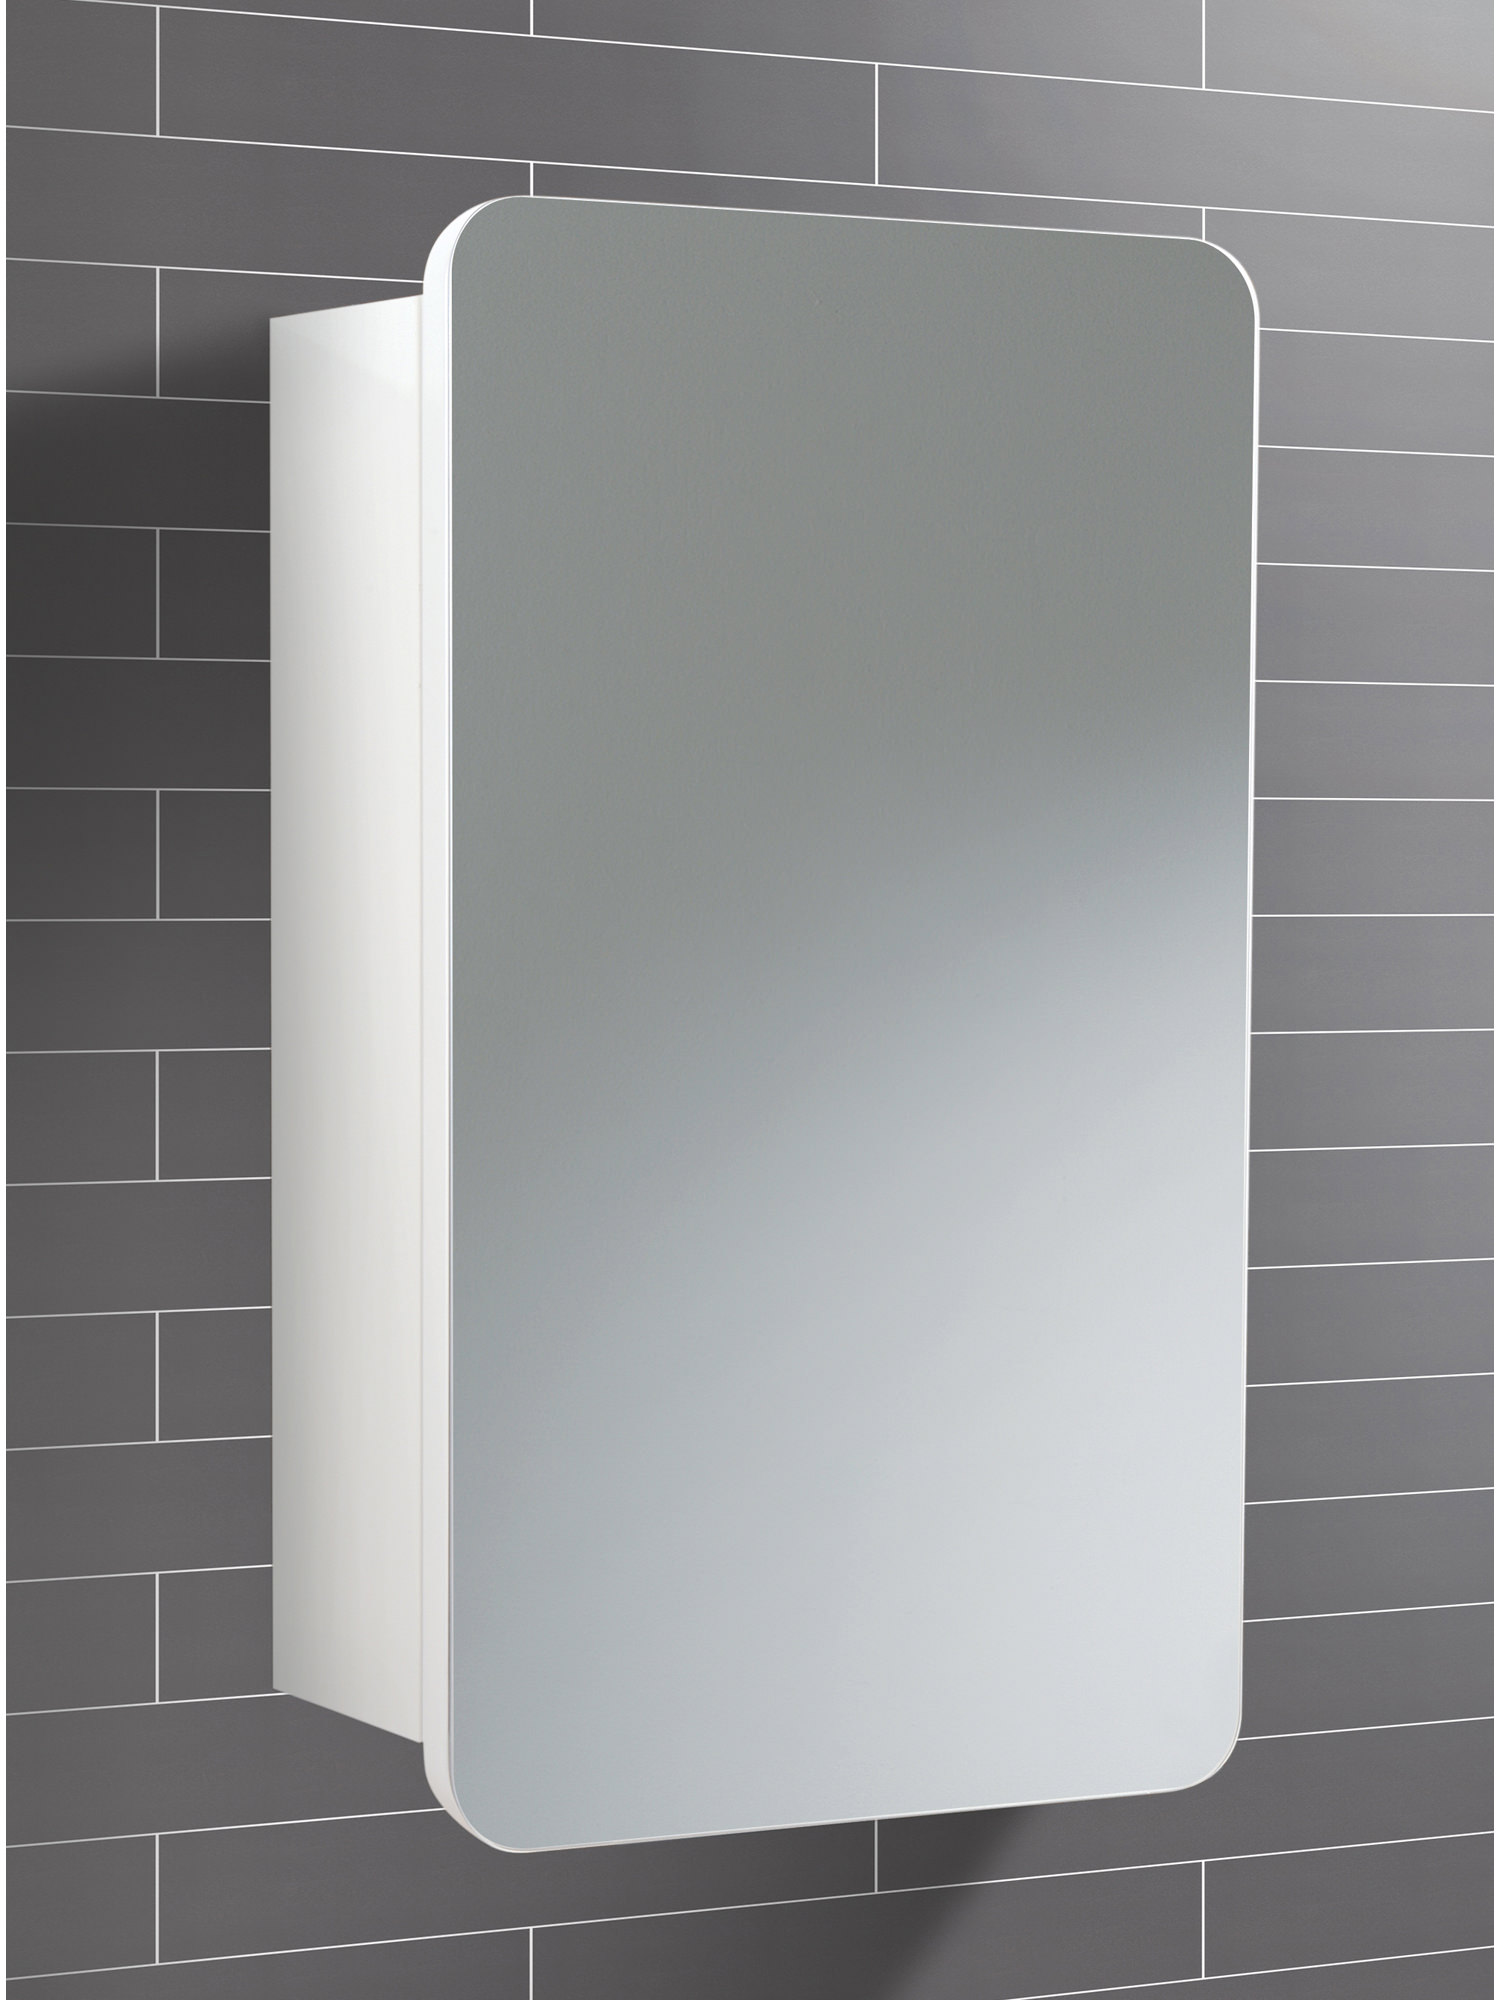 HIB Montana Single Door Bathroom Mirrored Cabinet 350 x 570mm ...